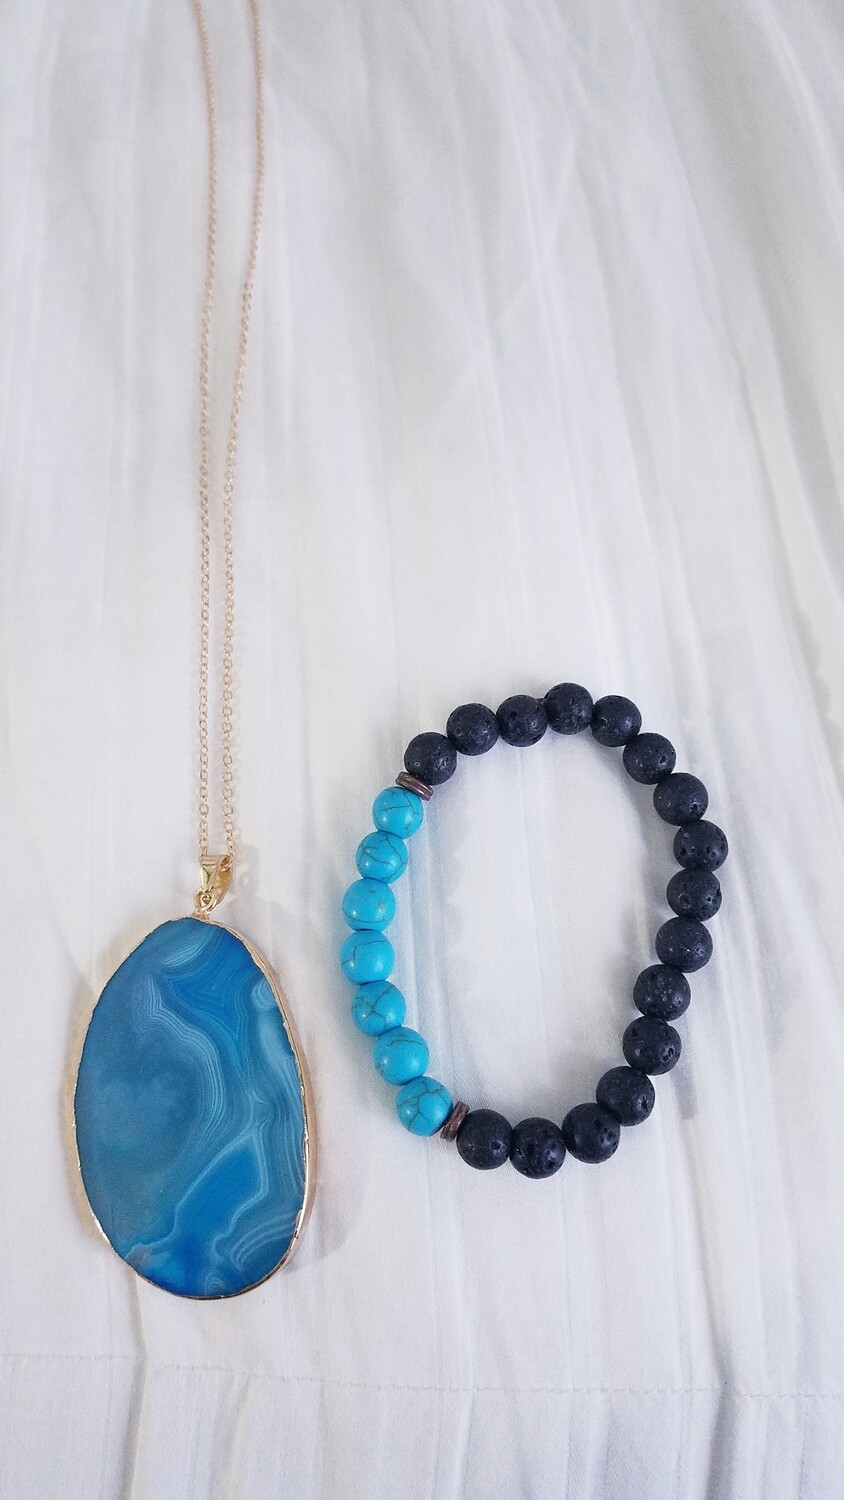 Blue Agate Necklace & Bracelet